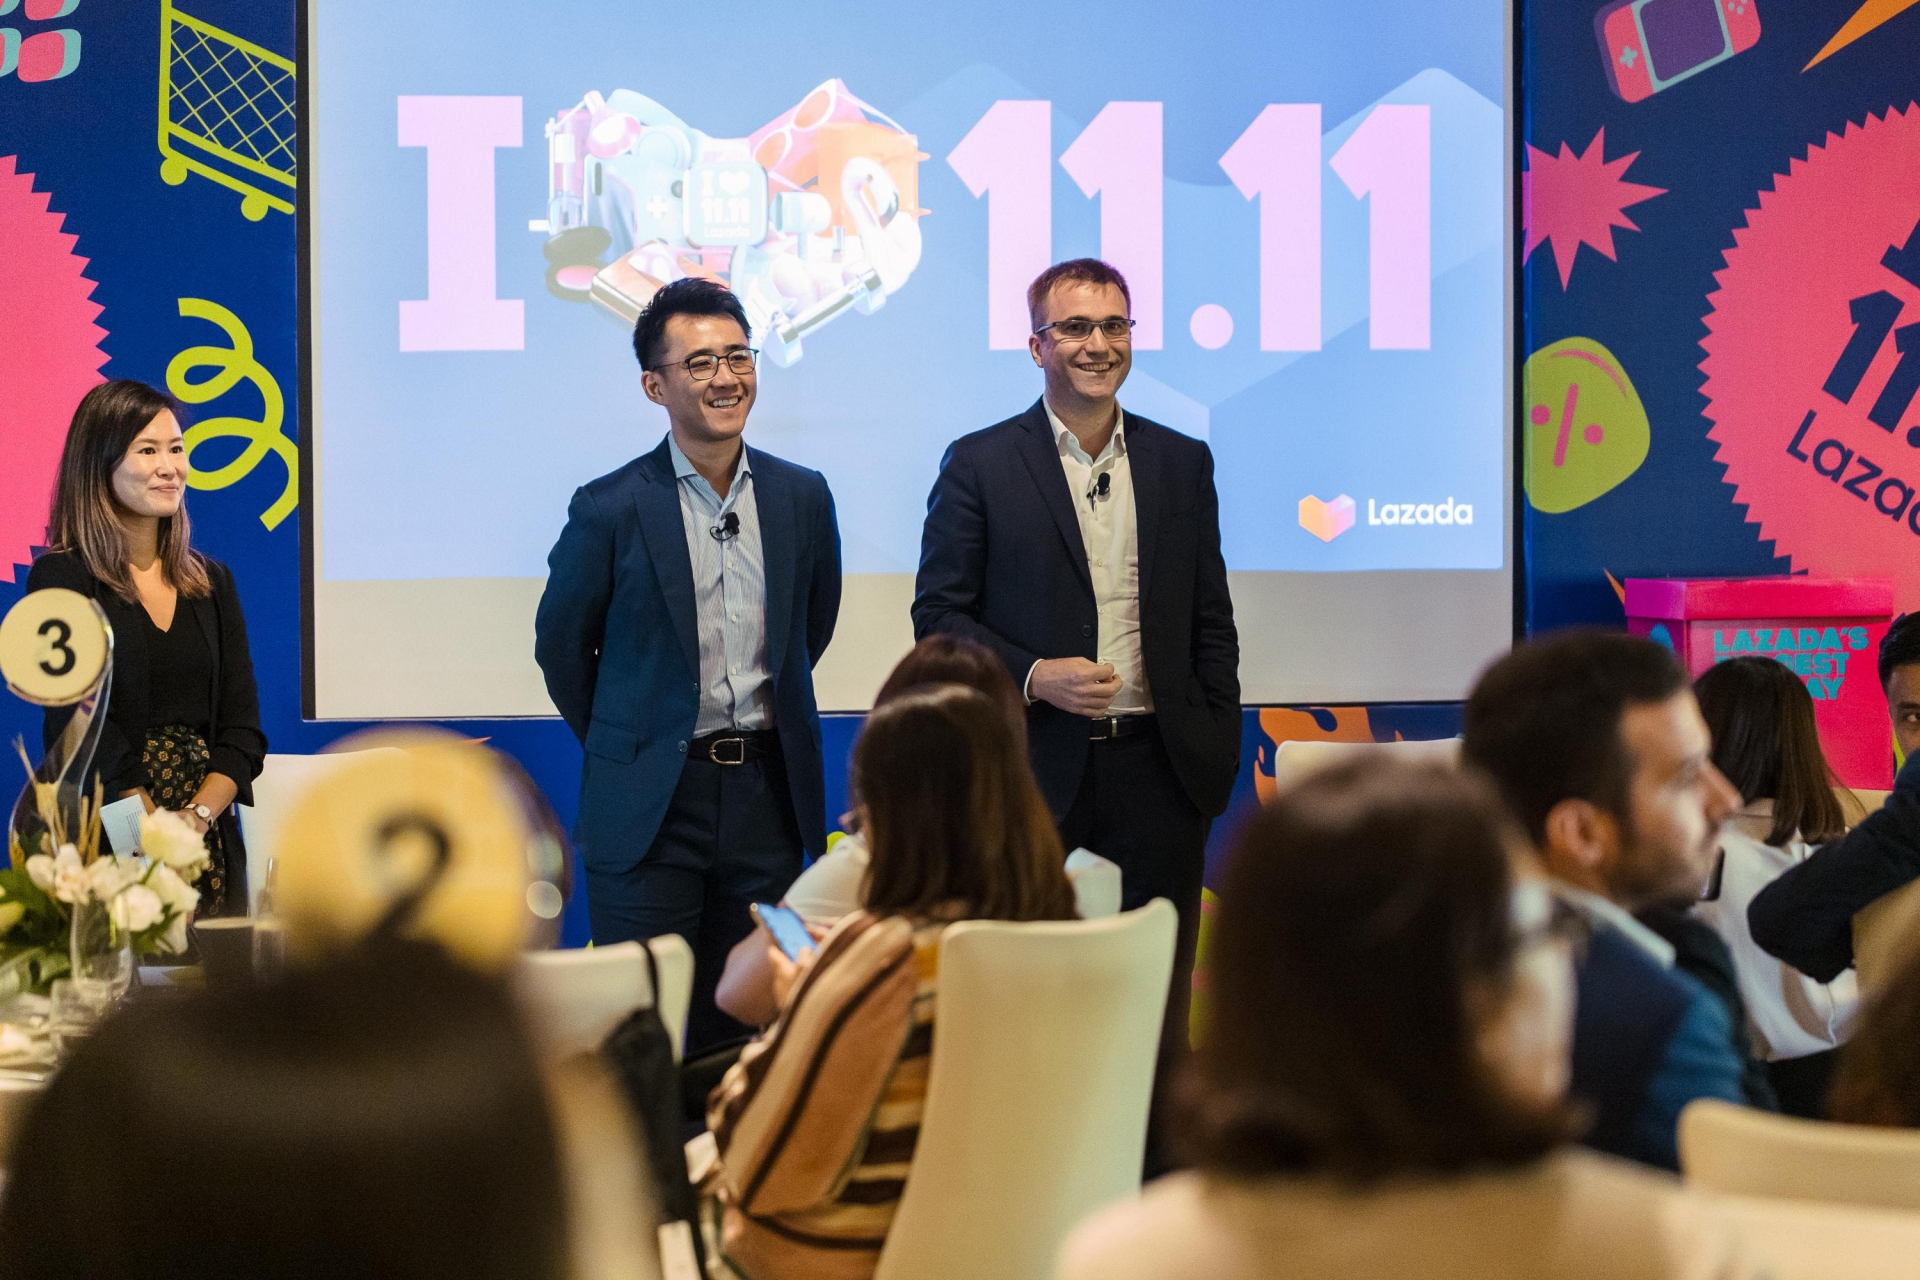 Lazada 11.11 campaign redefines retail experience in Southeast Asia